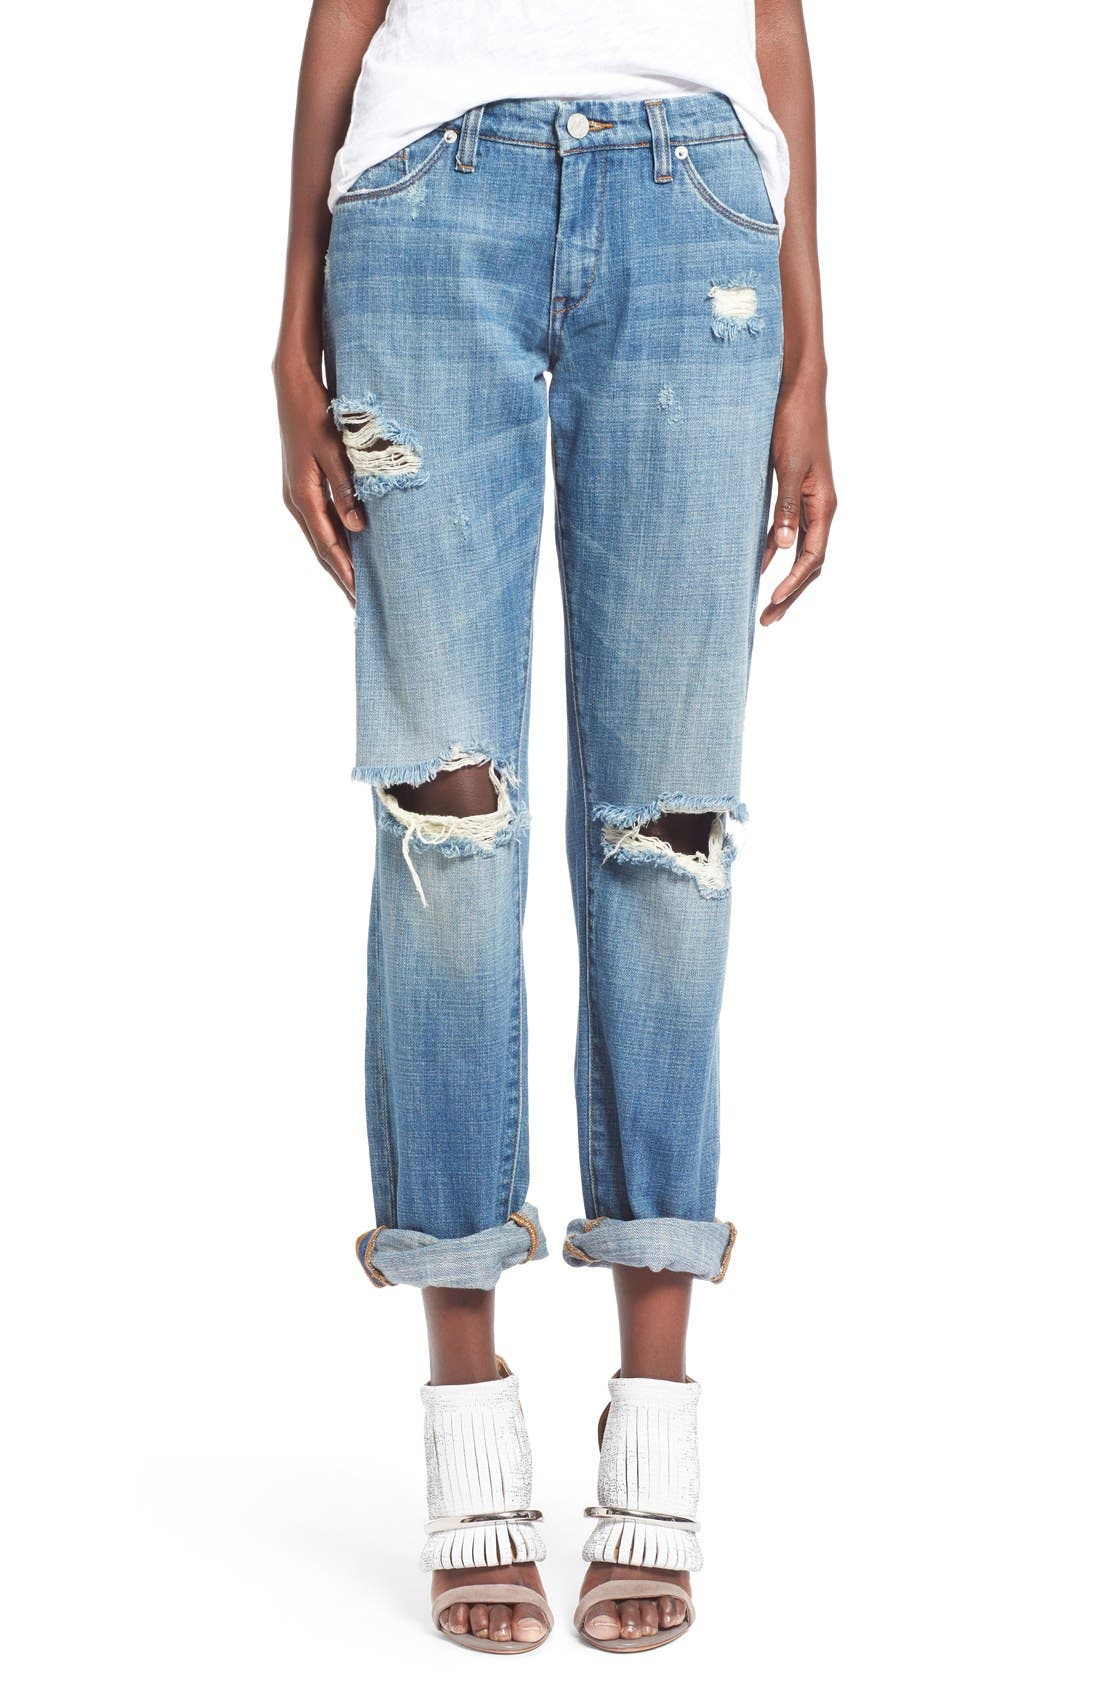 'Meant to Be' High Rise Distressed Boyfriend Jeans,                             Main thumbnail 1, color,                             400